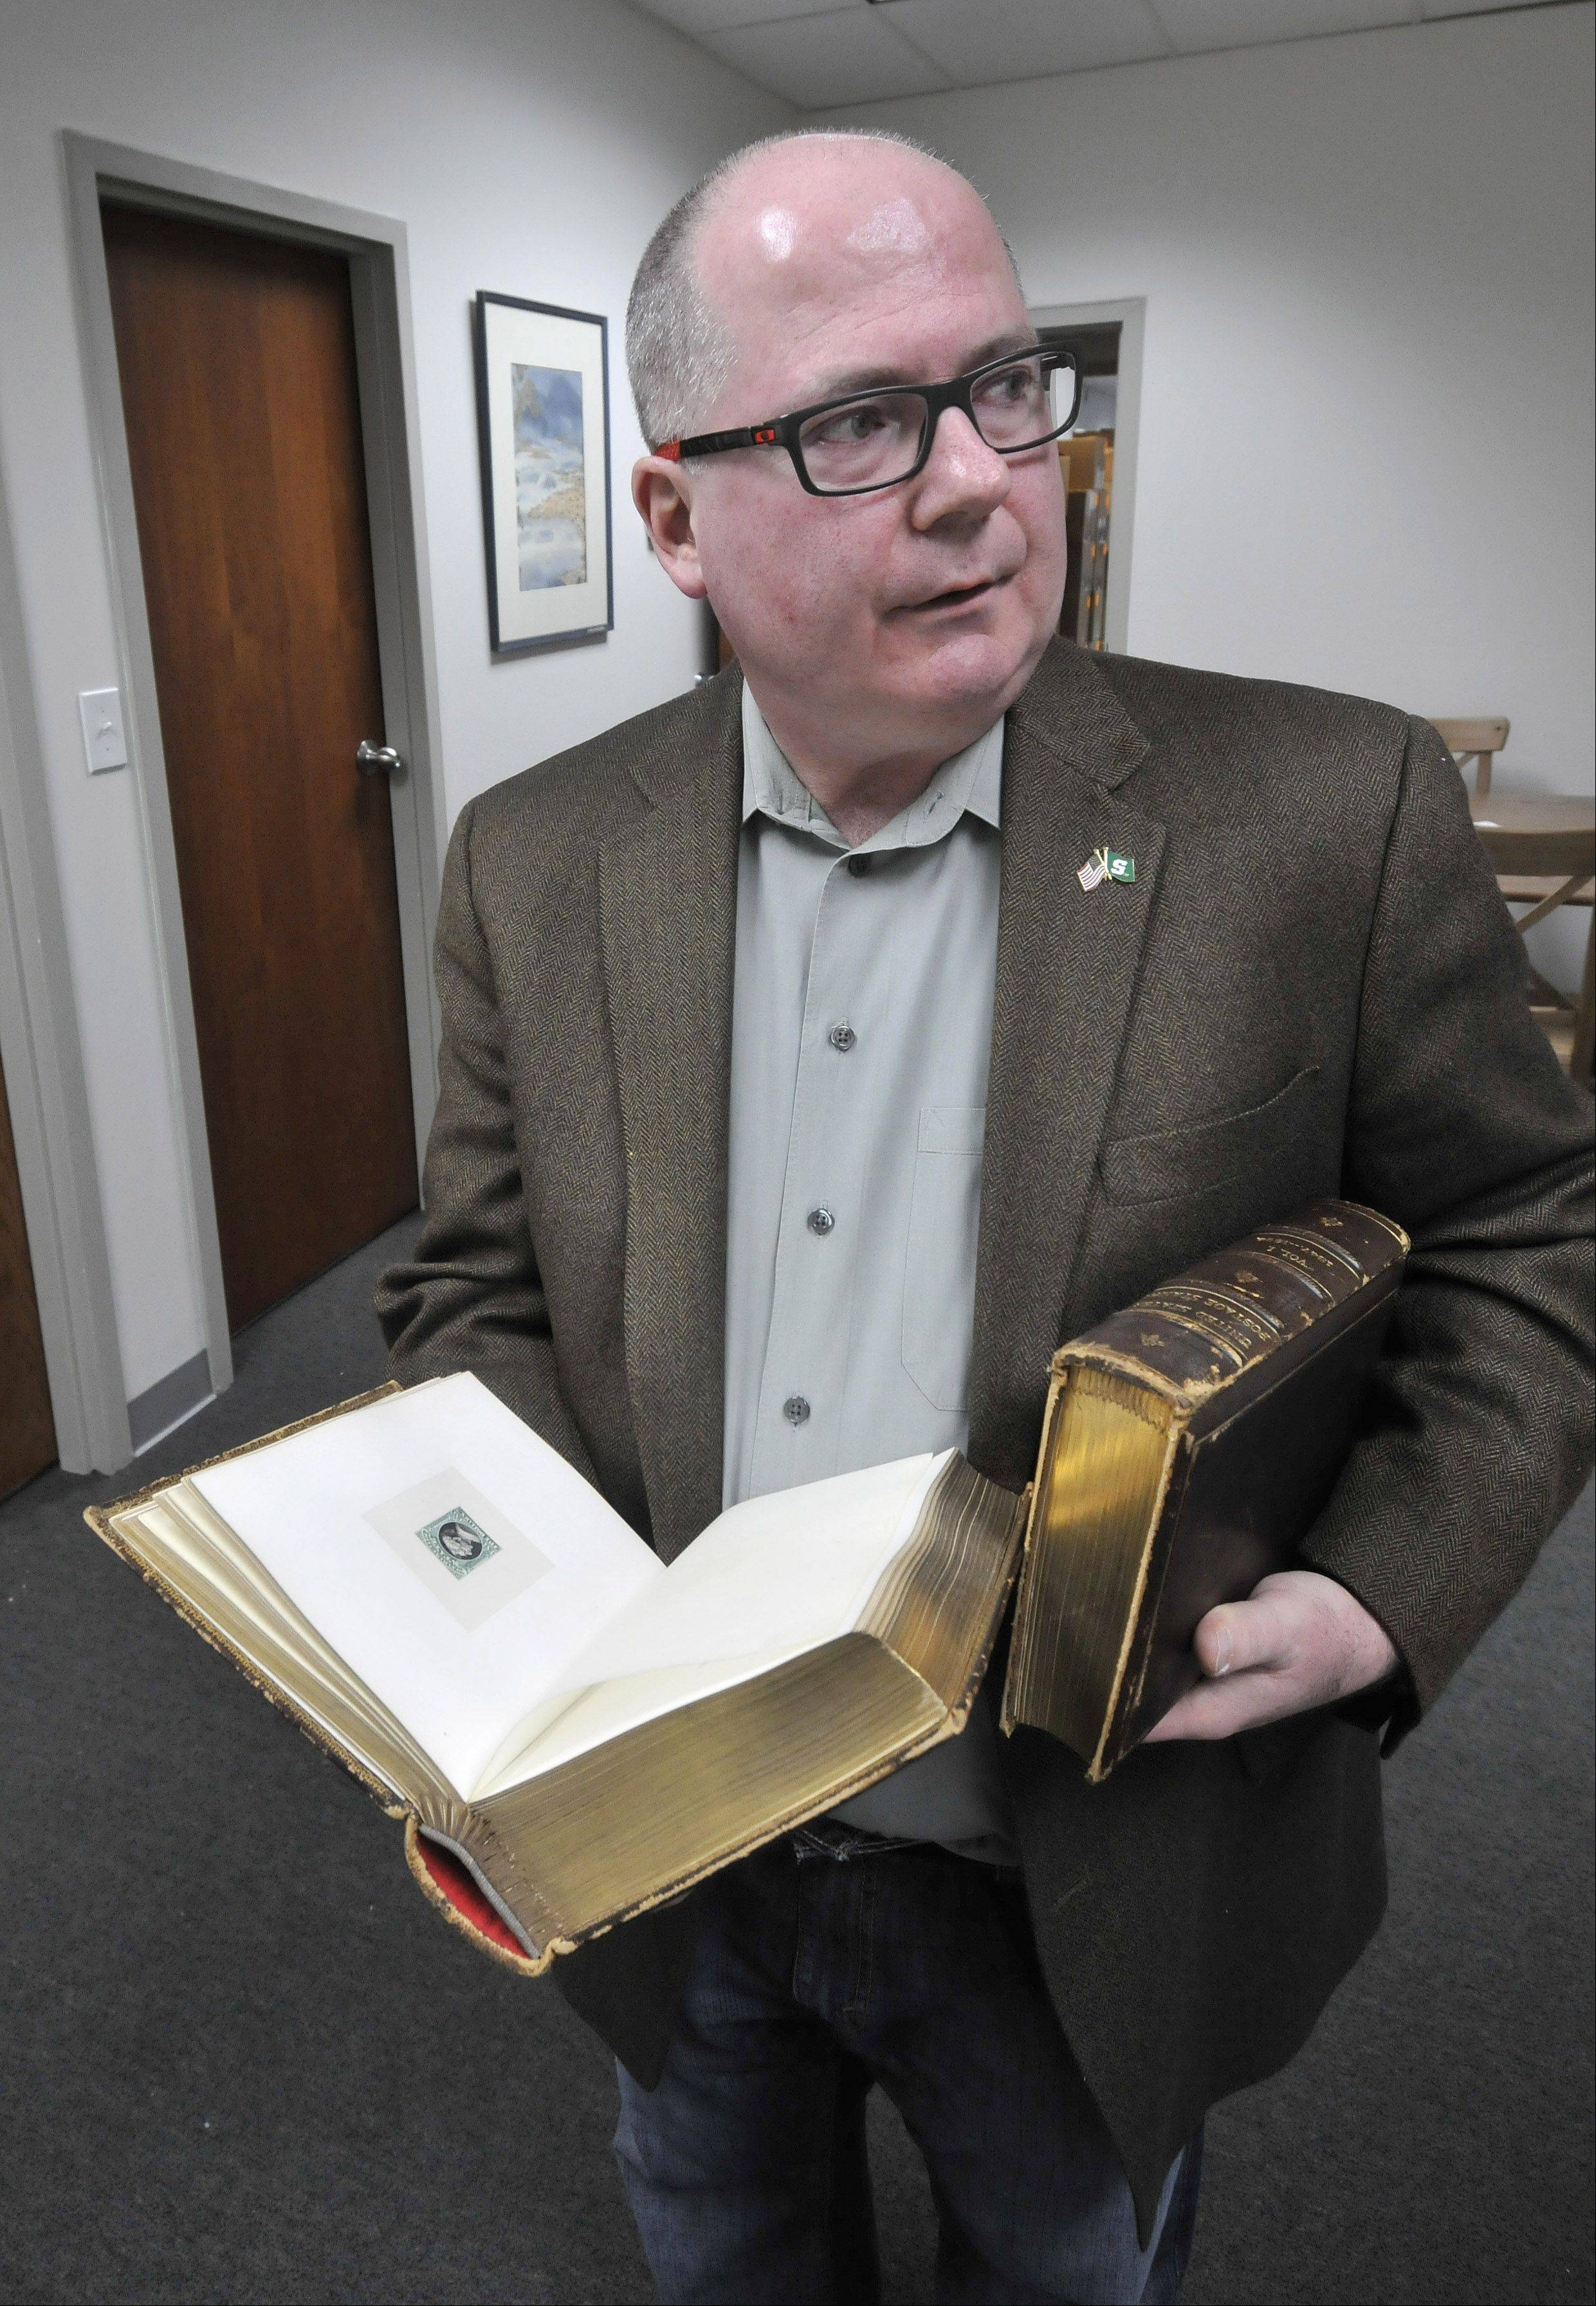 Stamp collecting is about more than stamps. Kim Kellermann, an owner of Rasdale Stamps in Westmont, says these display books of stamps used by a salesman to drum up printing business during the 1893 Columbian Exposition in Chicago are worth five figures.